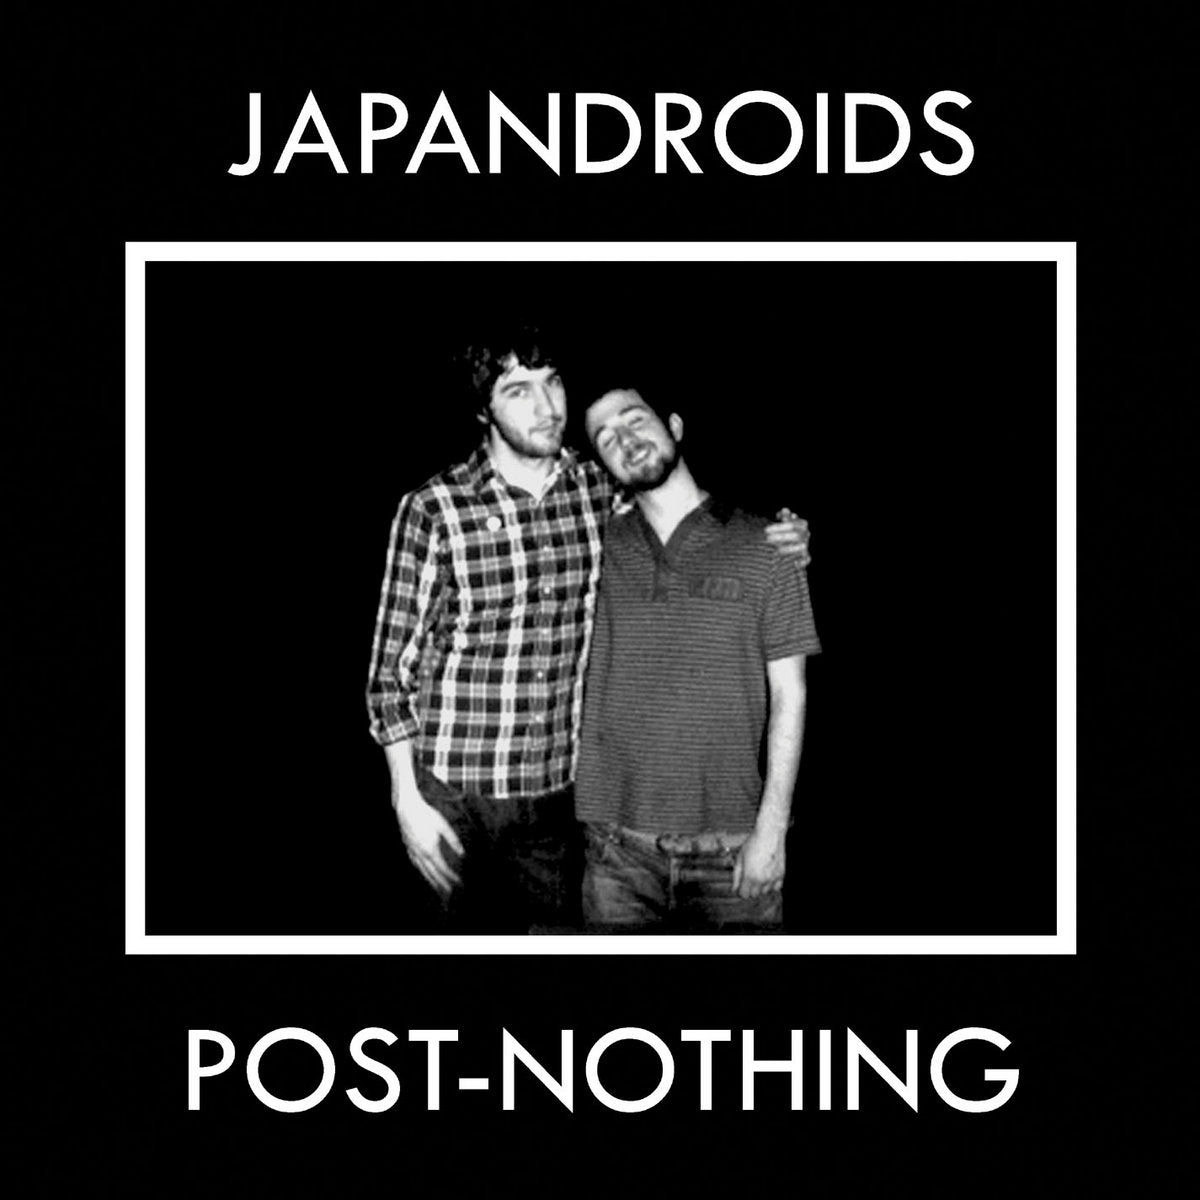 Japandroids - Post-Nothing LP - Vinyl